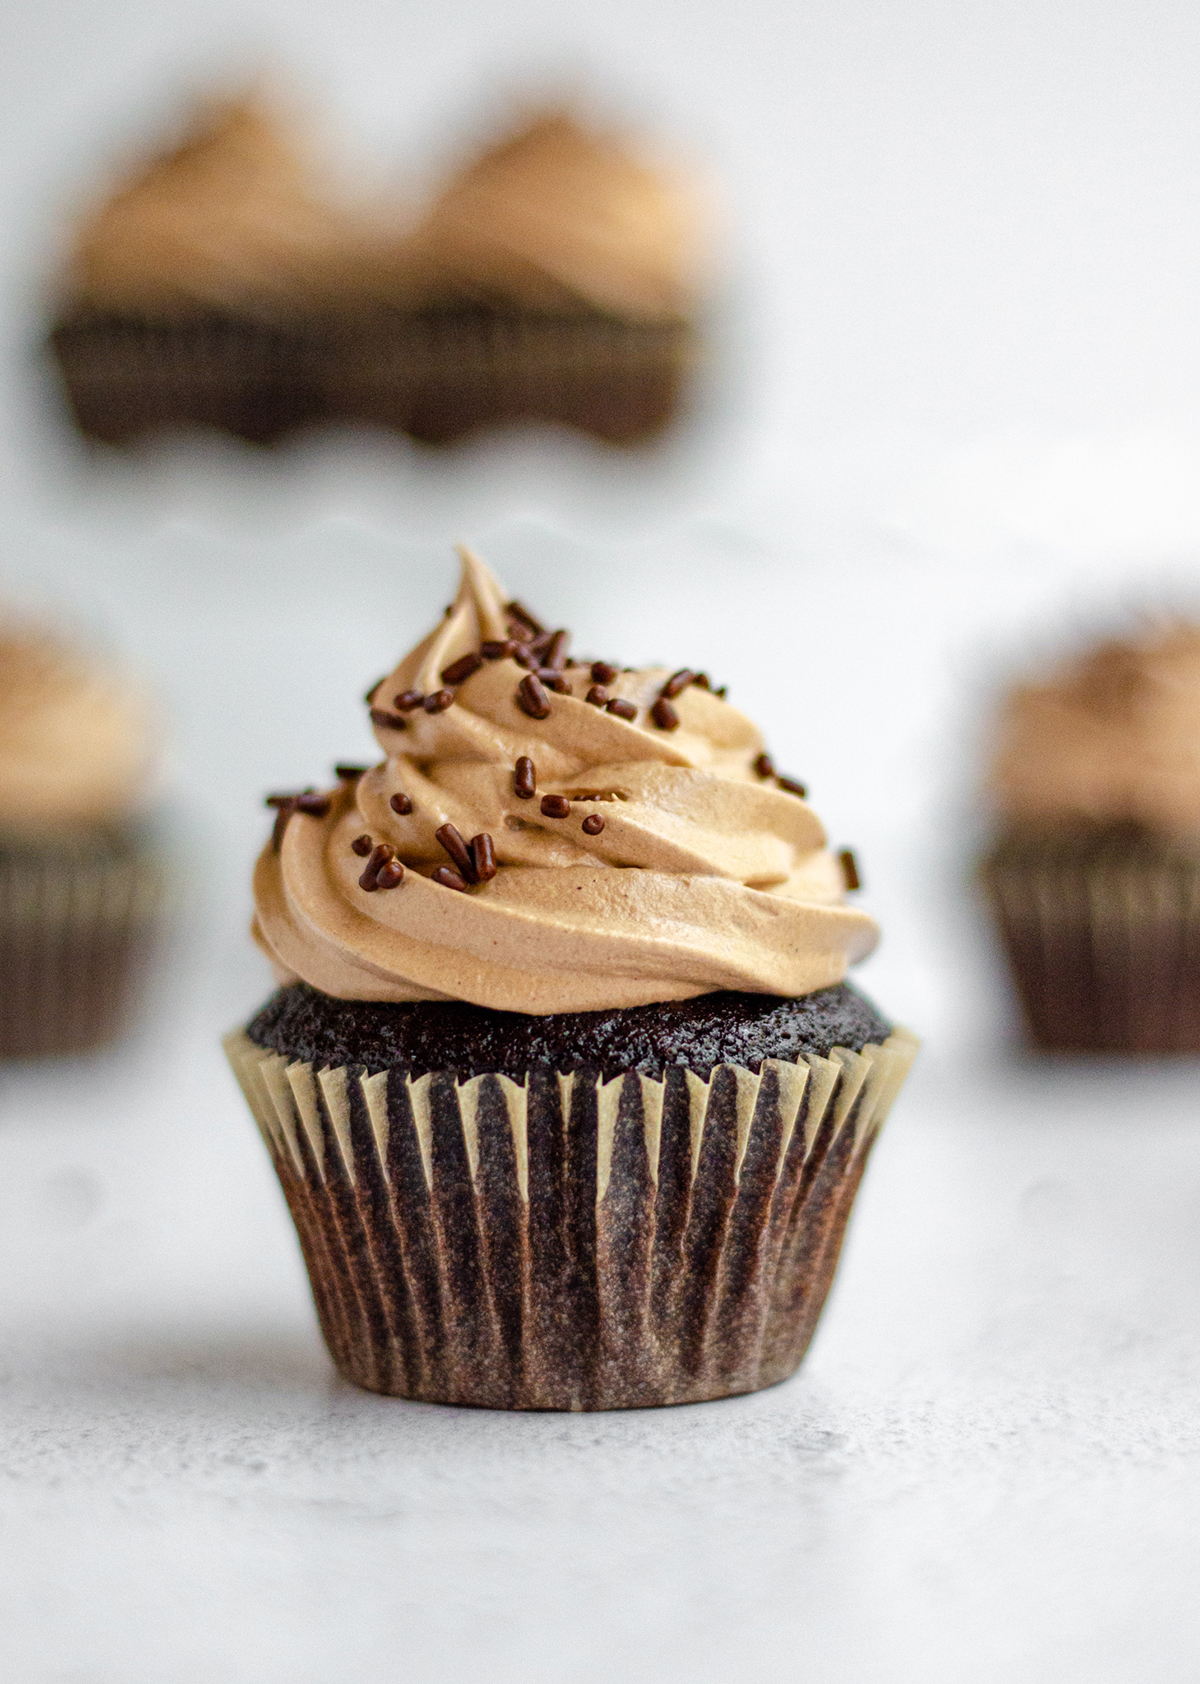 simple chocolate cupcakes with chocolate swiss meringue buttercream and chocolate sprinkles on top